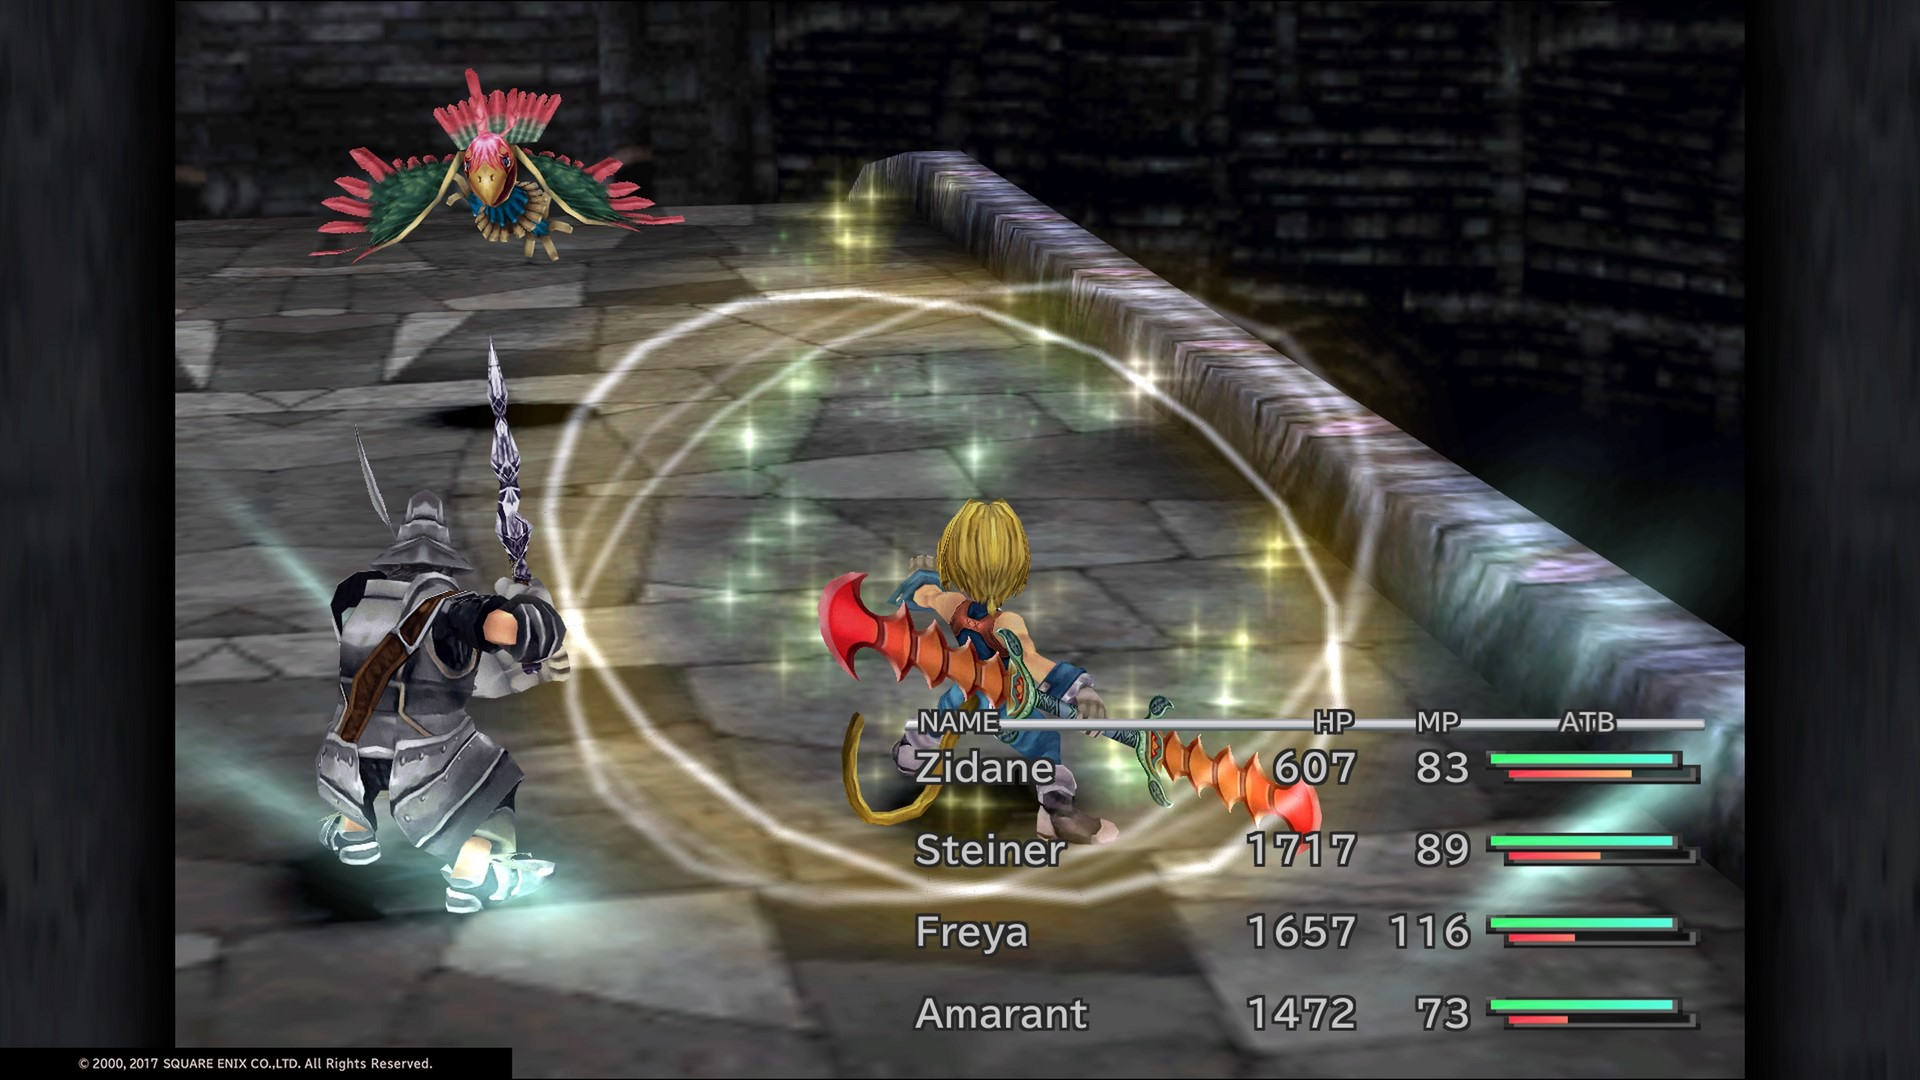 Guide Here Are All The Cheats In Final Fantasy IX For PS4